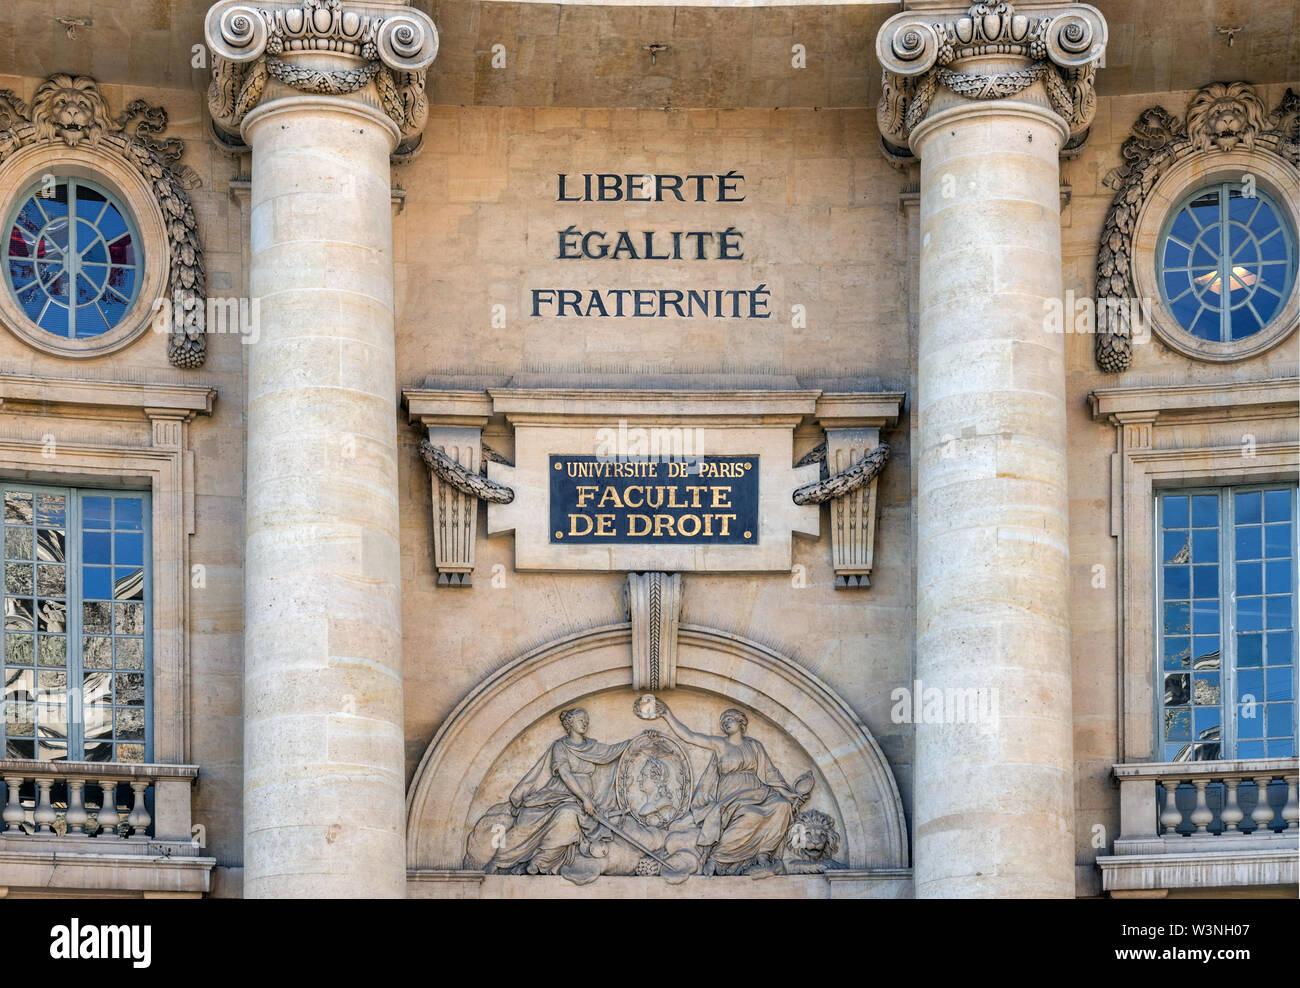 Law Faculty building of Sorbonne, University of Paris - Stock Image